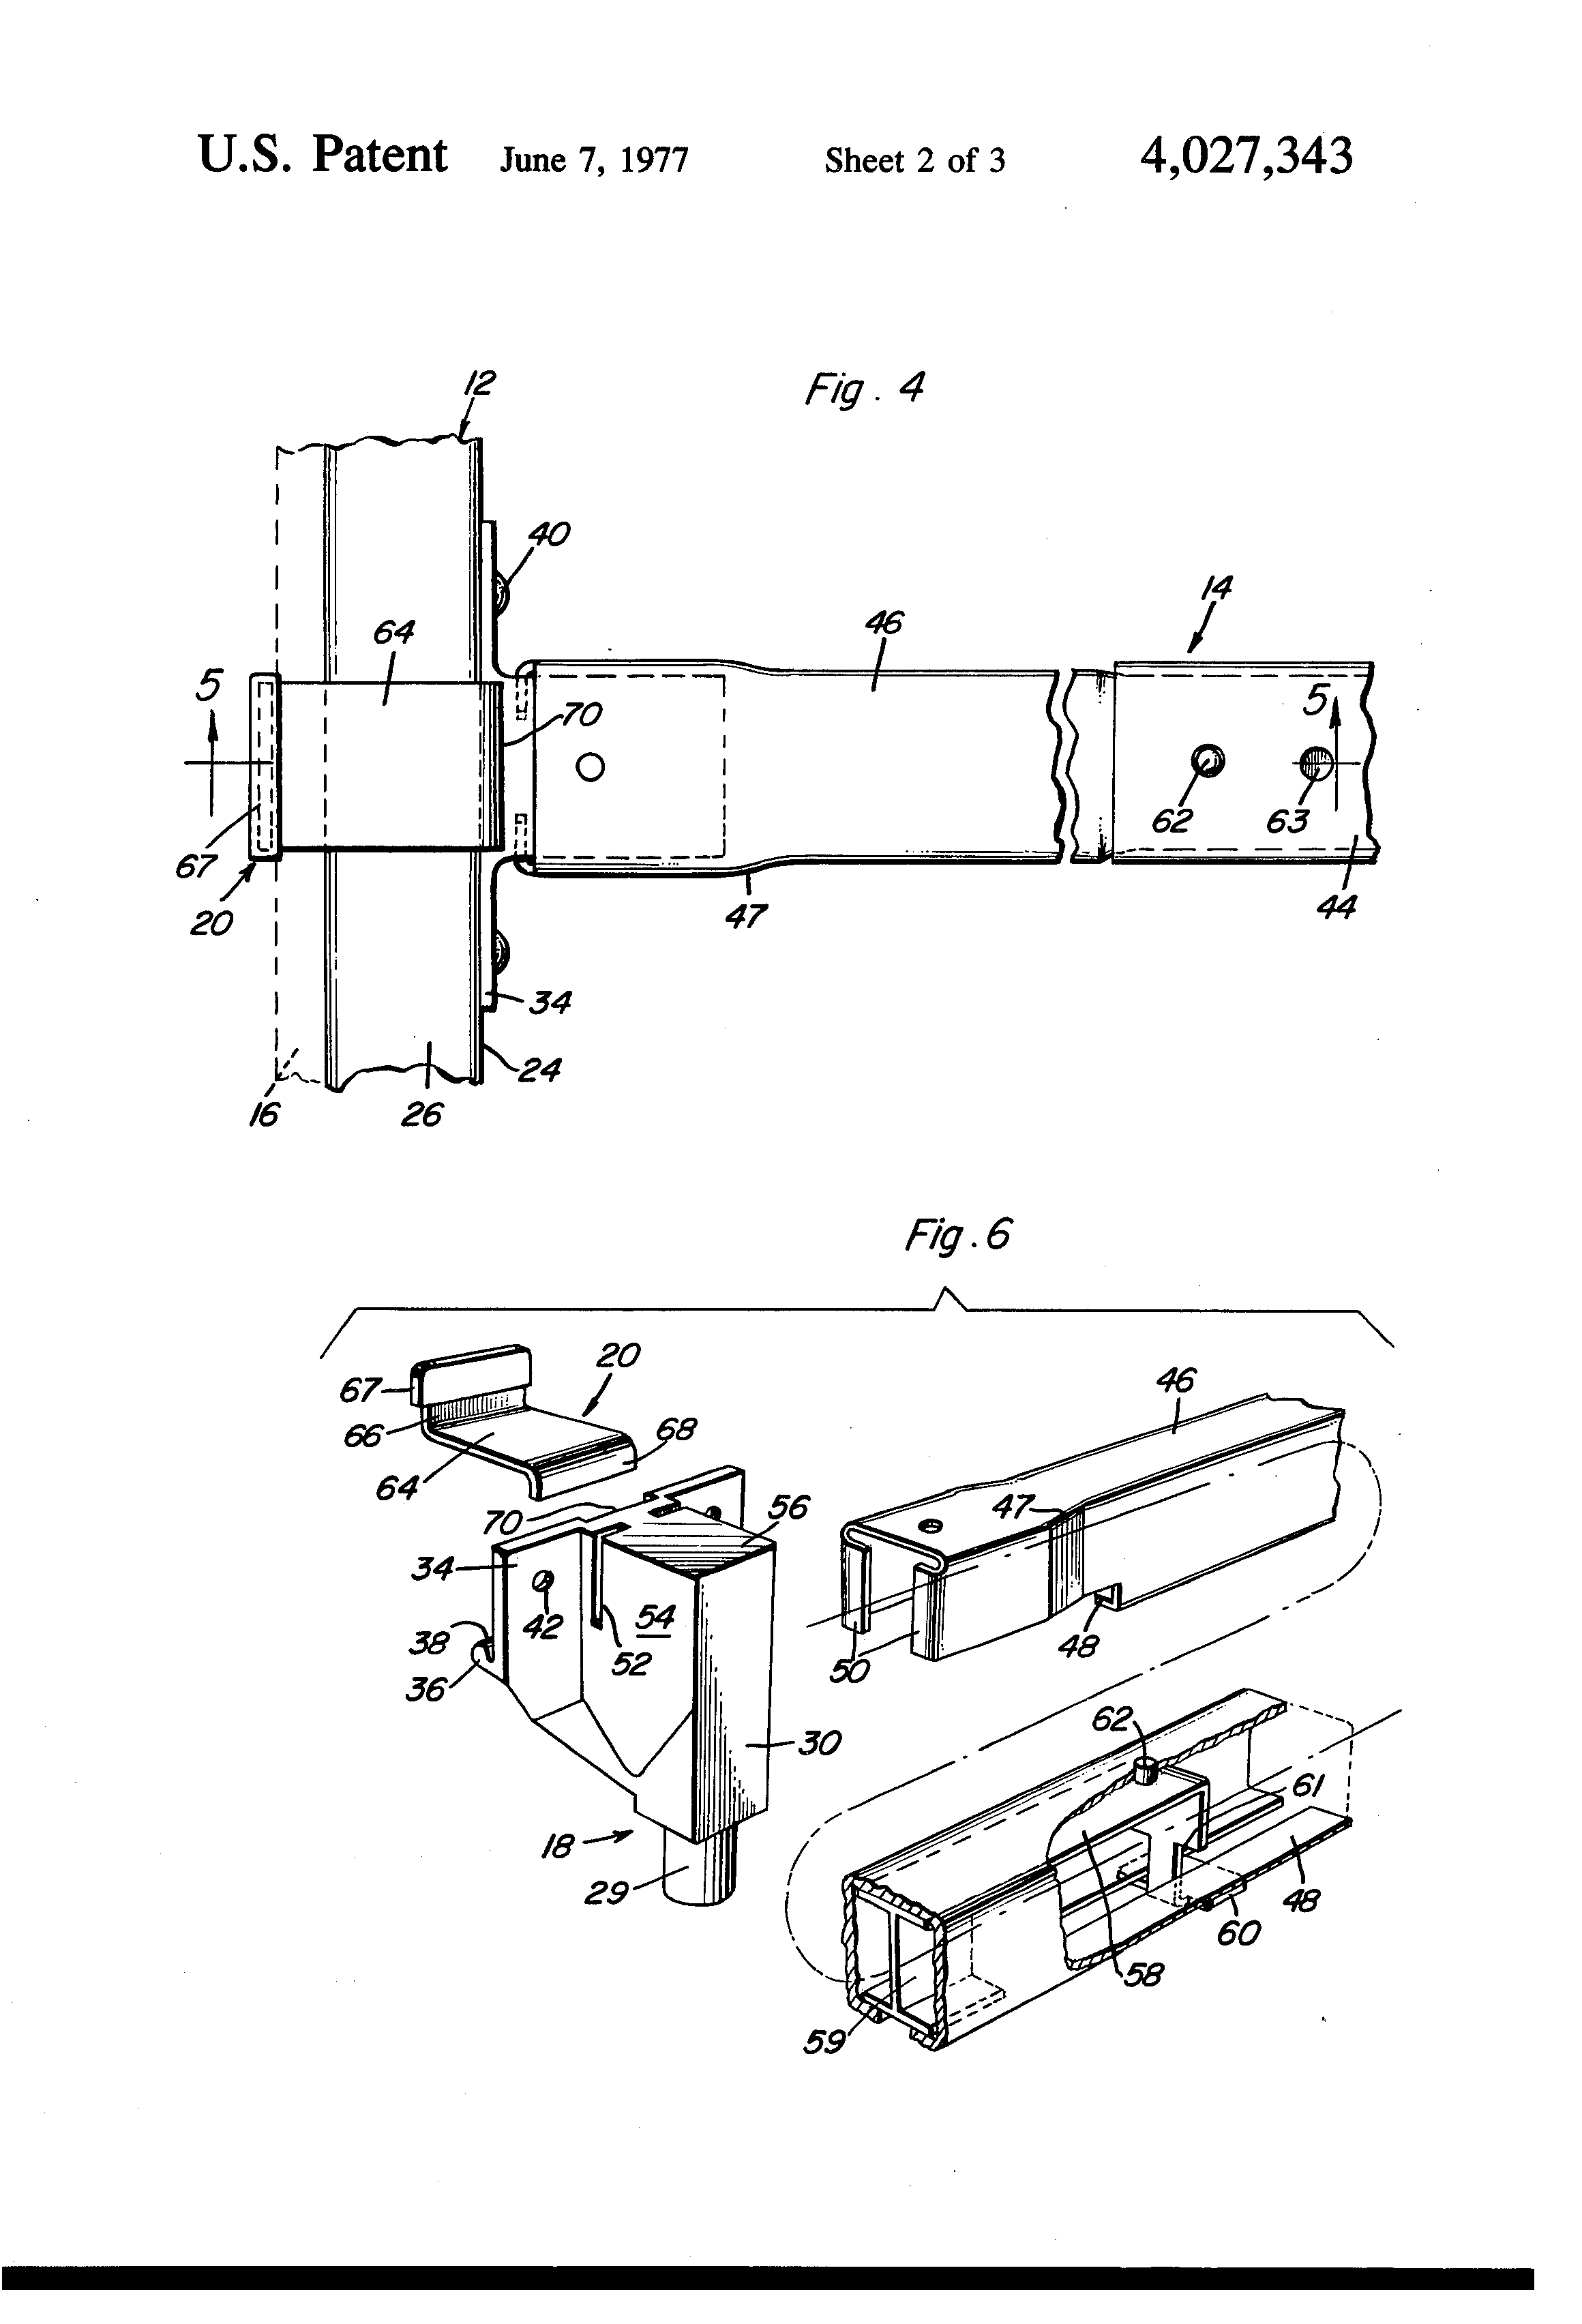 Amazing Patent Drawing